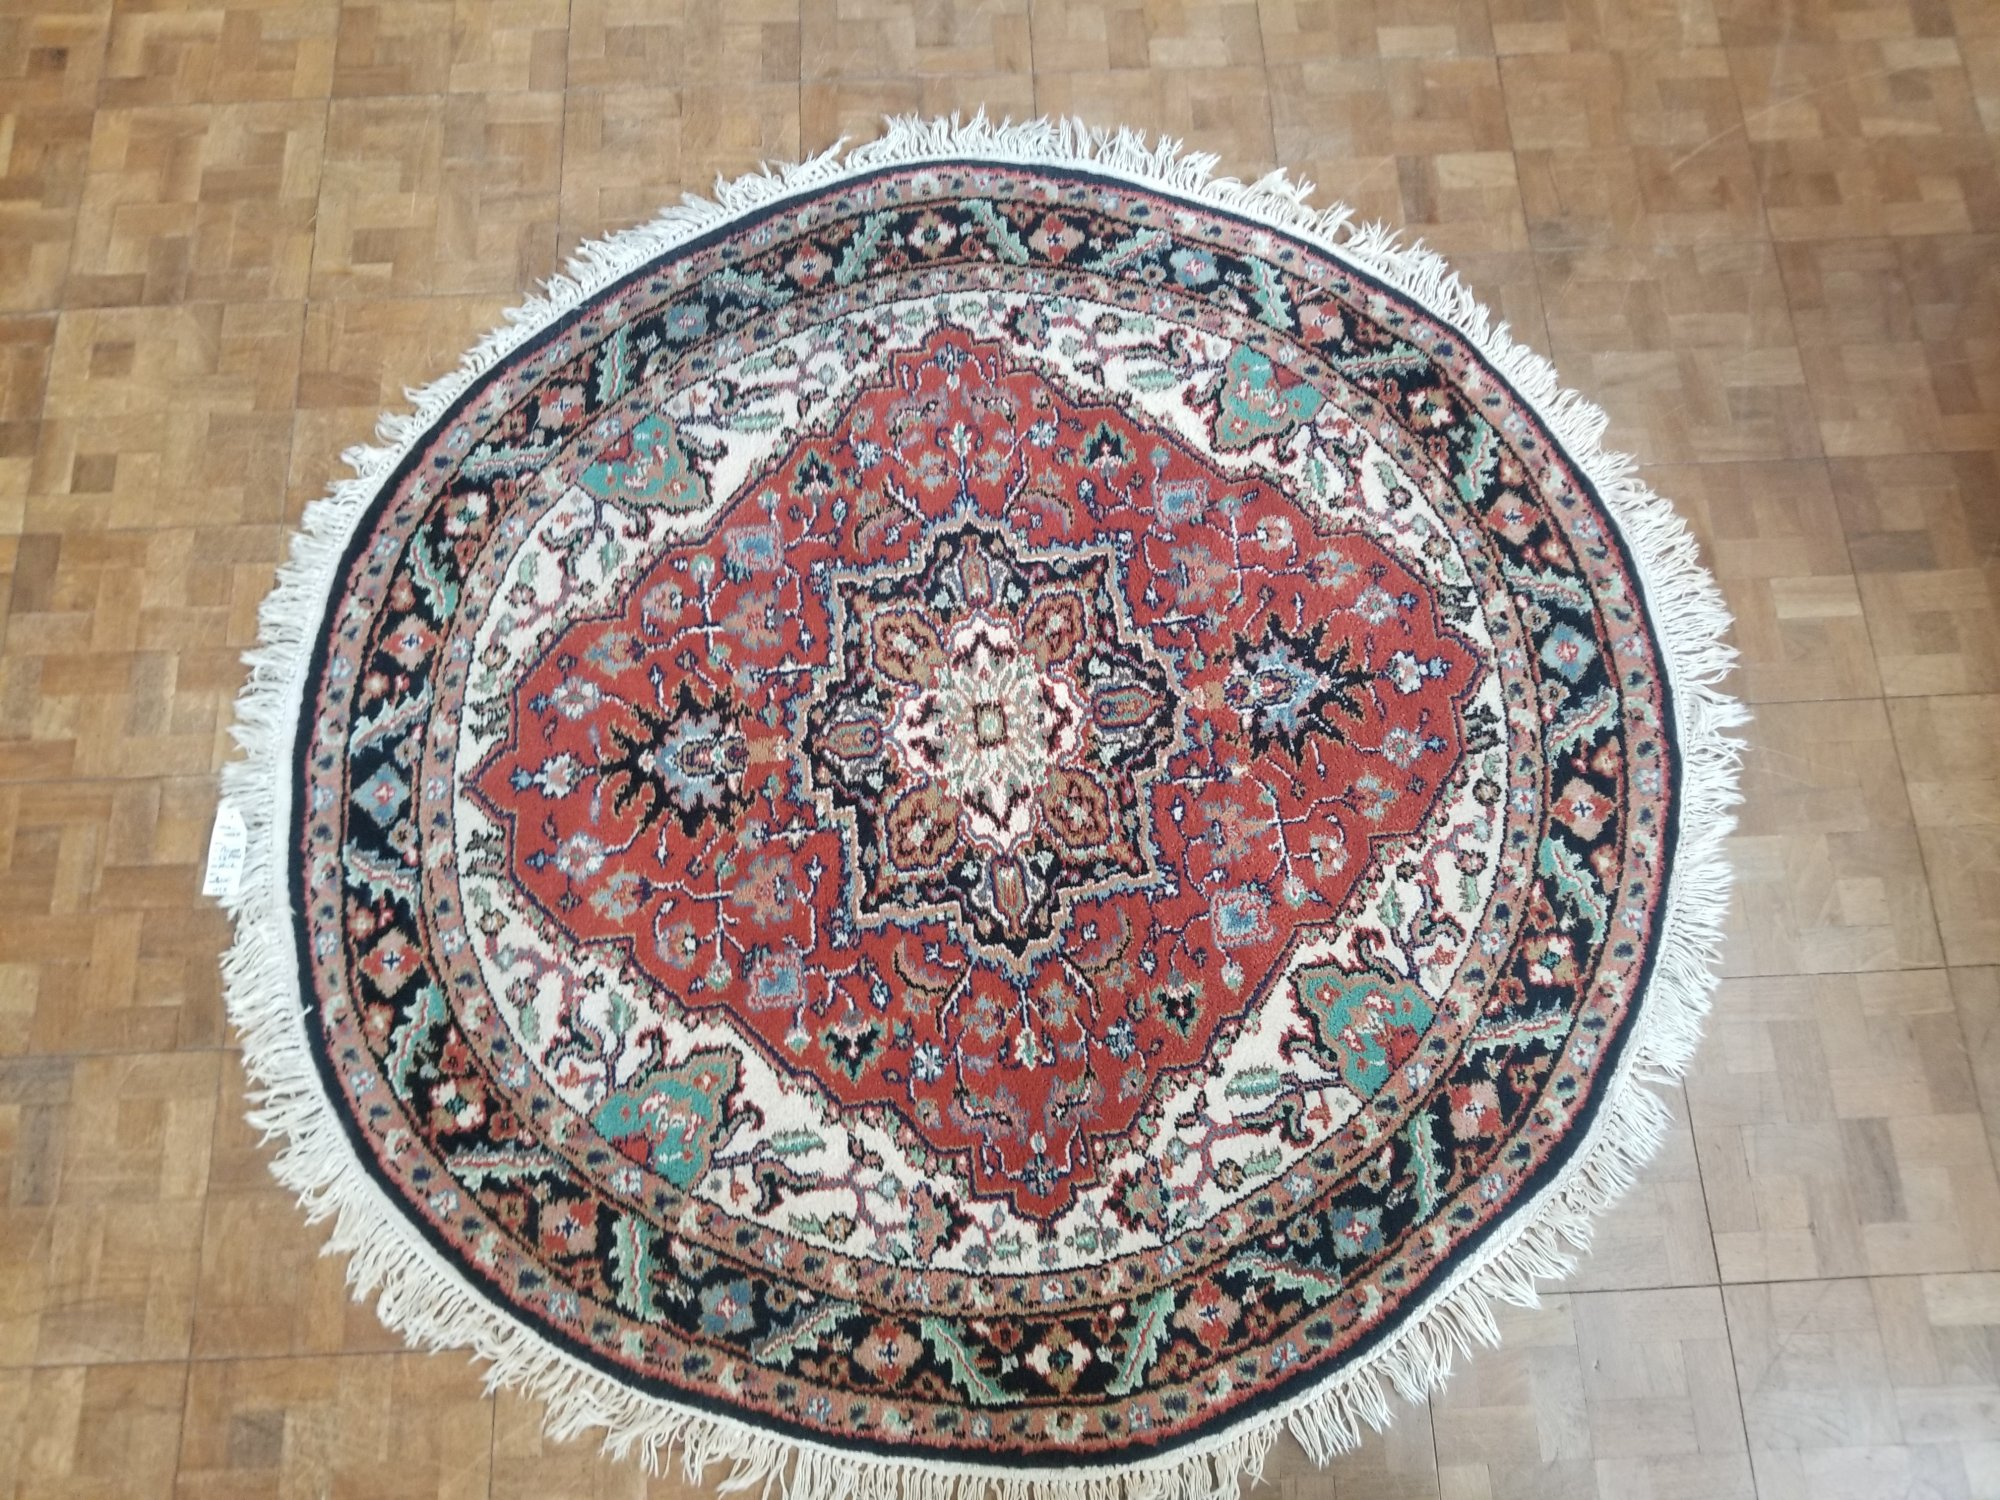 5'6 X 5'6 round Persian Heriz rust red field with a center medallion of cream outlined in black with a black border and many accent colors like grey green taupe and light blue     UTX